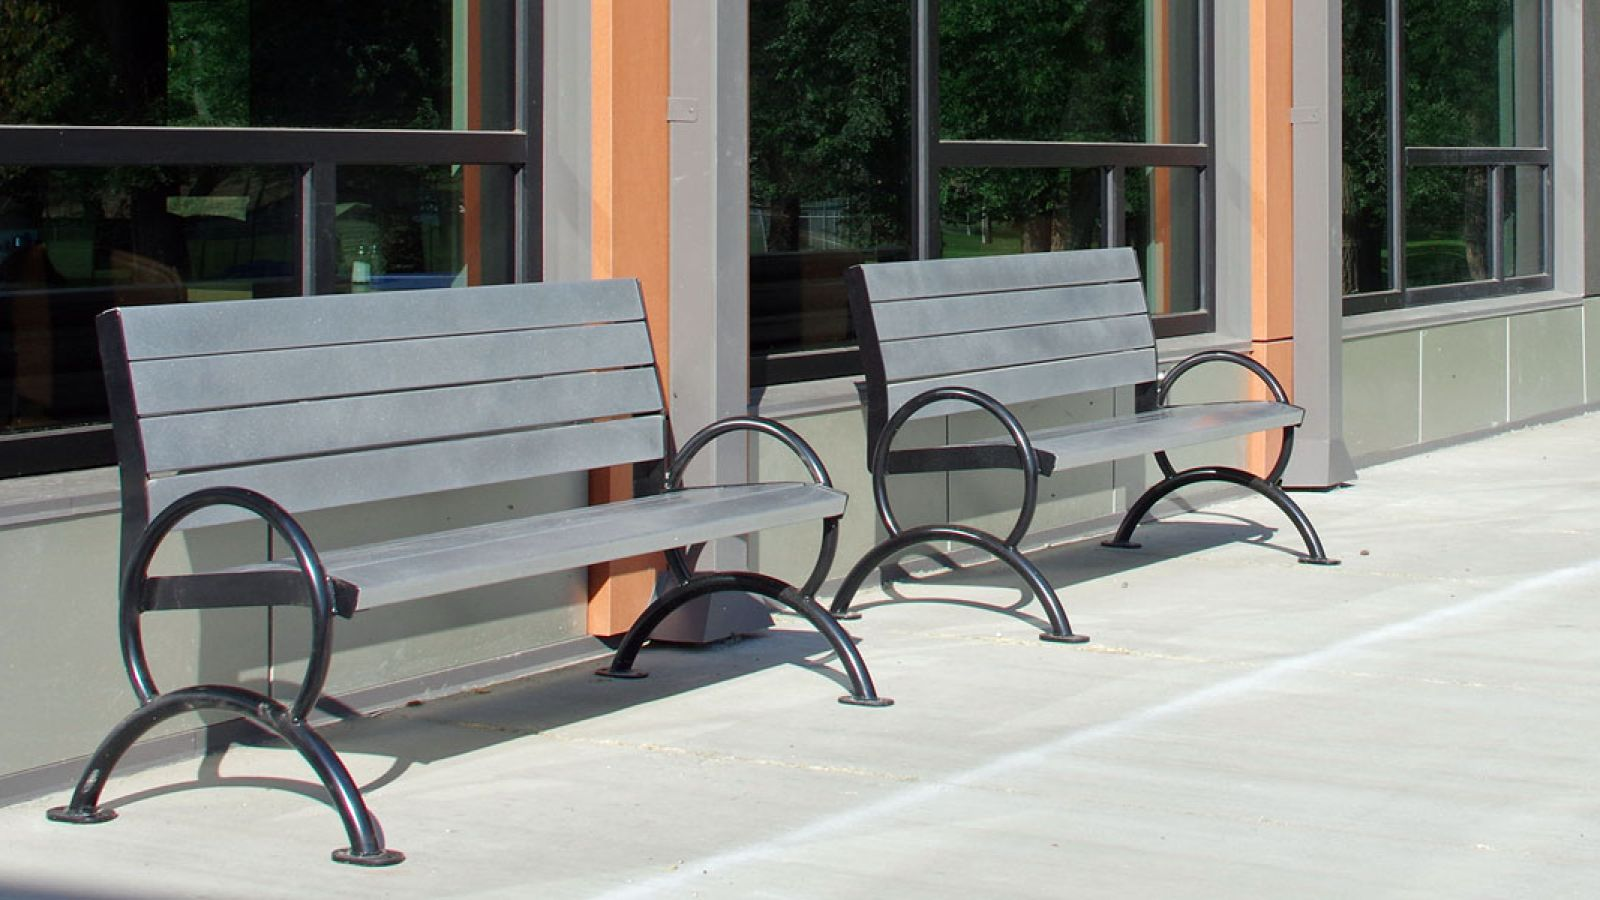 Park Furniture & Amenities